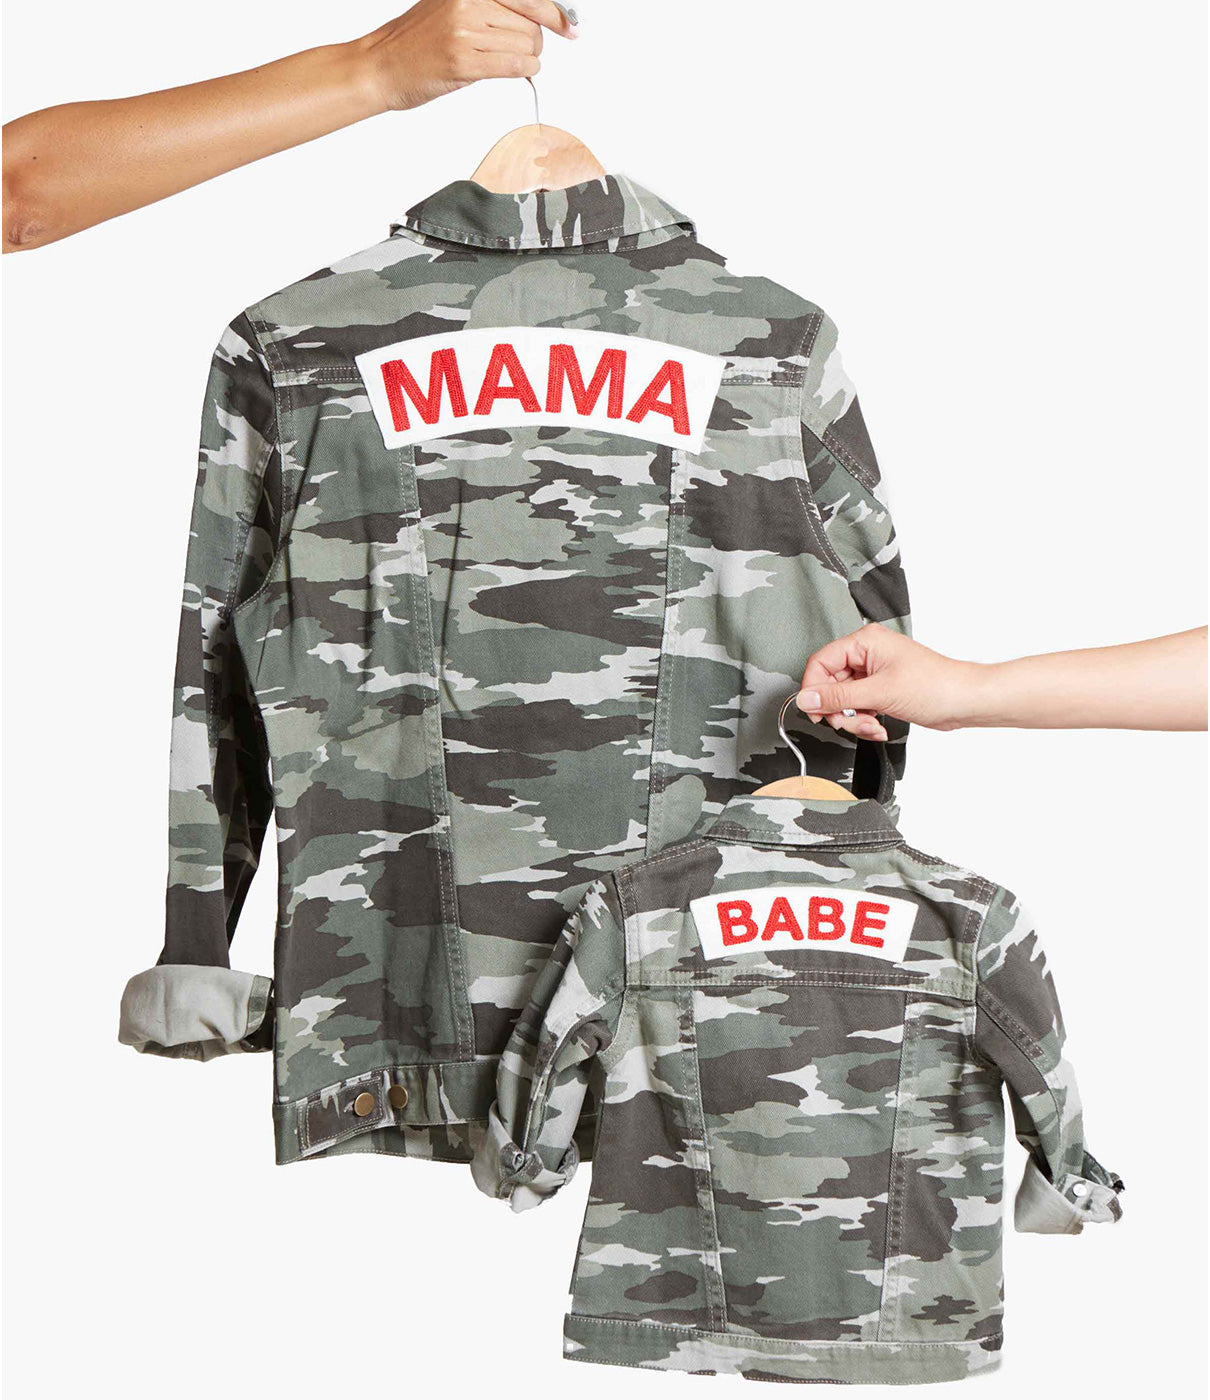 MAKE IT A PAIRCheck out our MAMA jacket for an adorable mommy-and-me look.